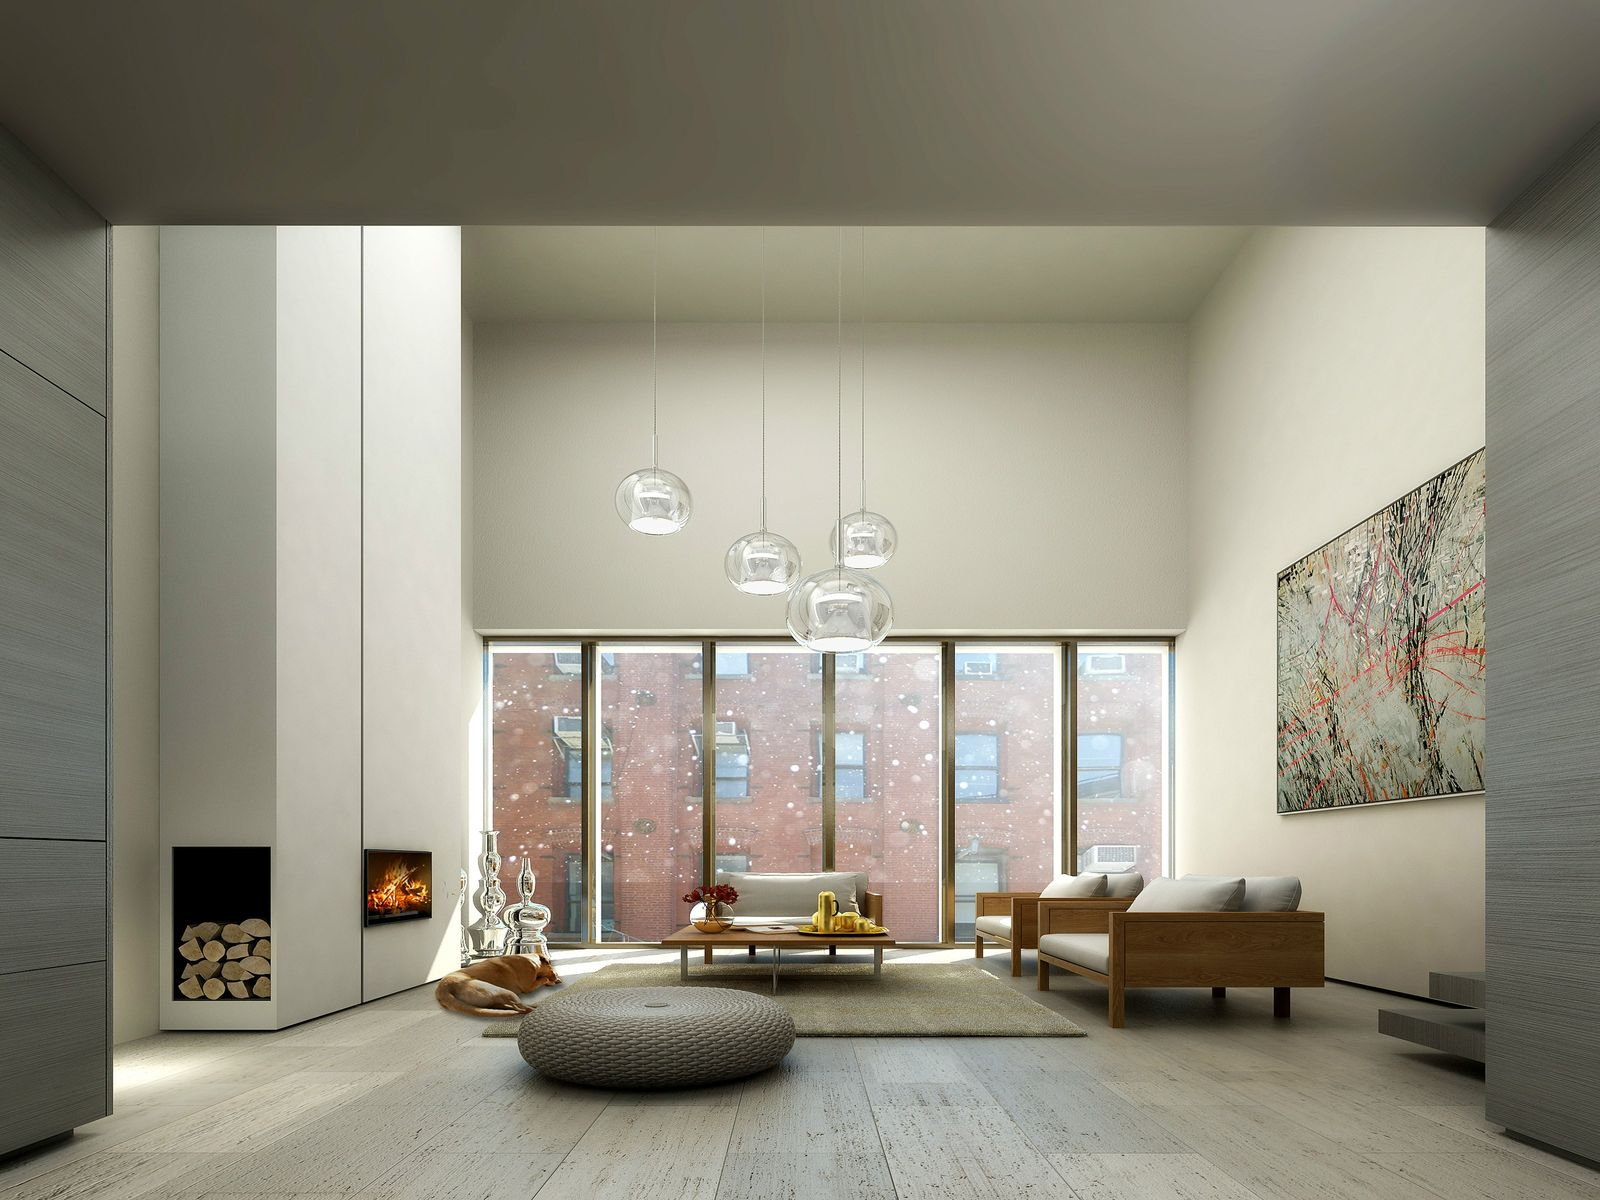 Dumbo's Contemporary Townhouses, Brooklyn NY Townhouse - New York City Real Estate